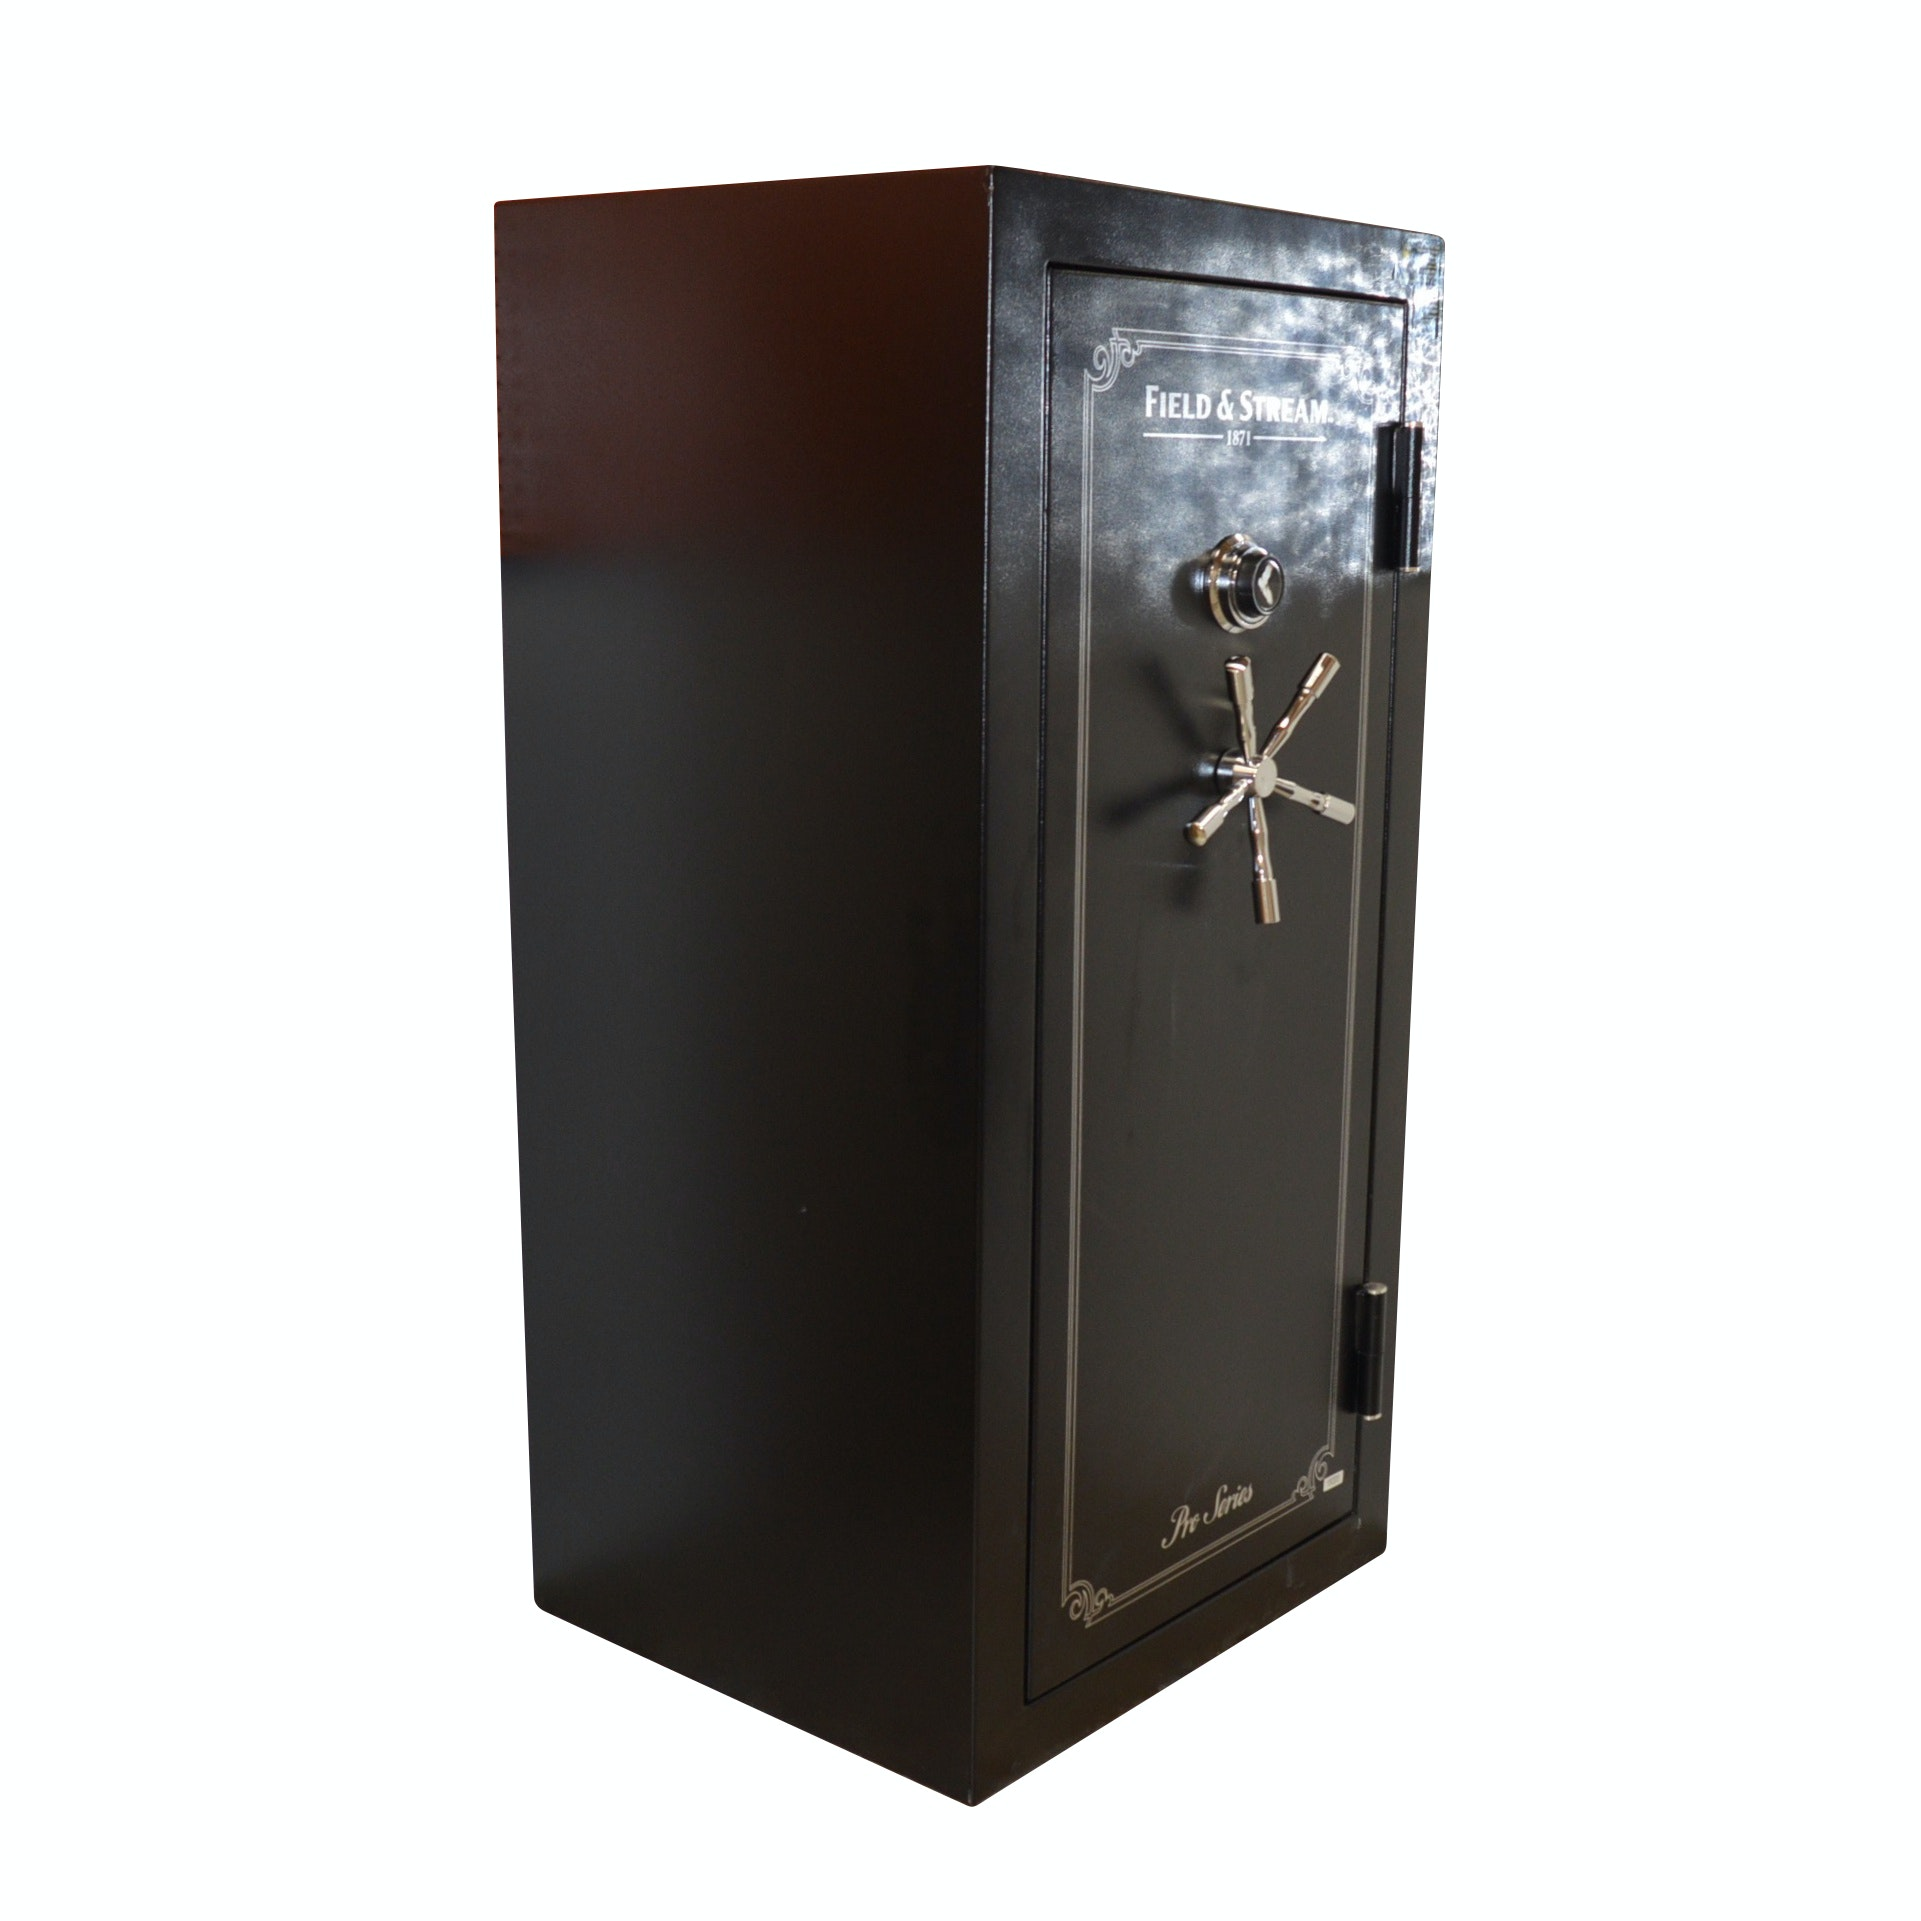 Field & Stream Pro Series Safe